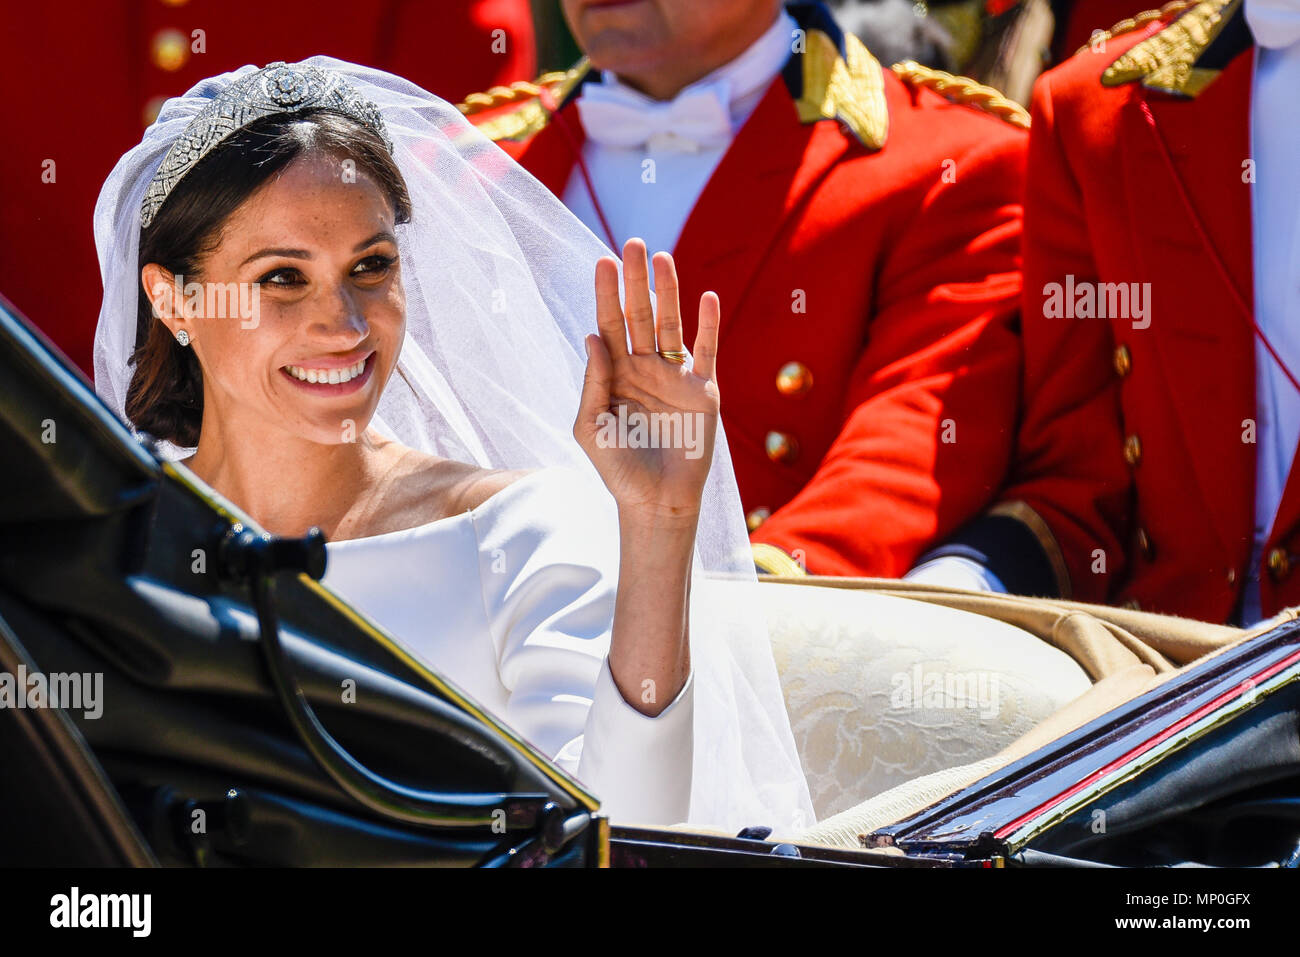 meghan-markle-in-carriage-procession-after-the-royal-wedding-at-windsor-on-the-long-walk-duchess-of-sussex-wedding-dress-tiara-and-veil-waving-MP0GFX.jpg